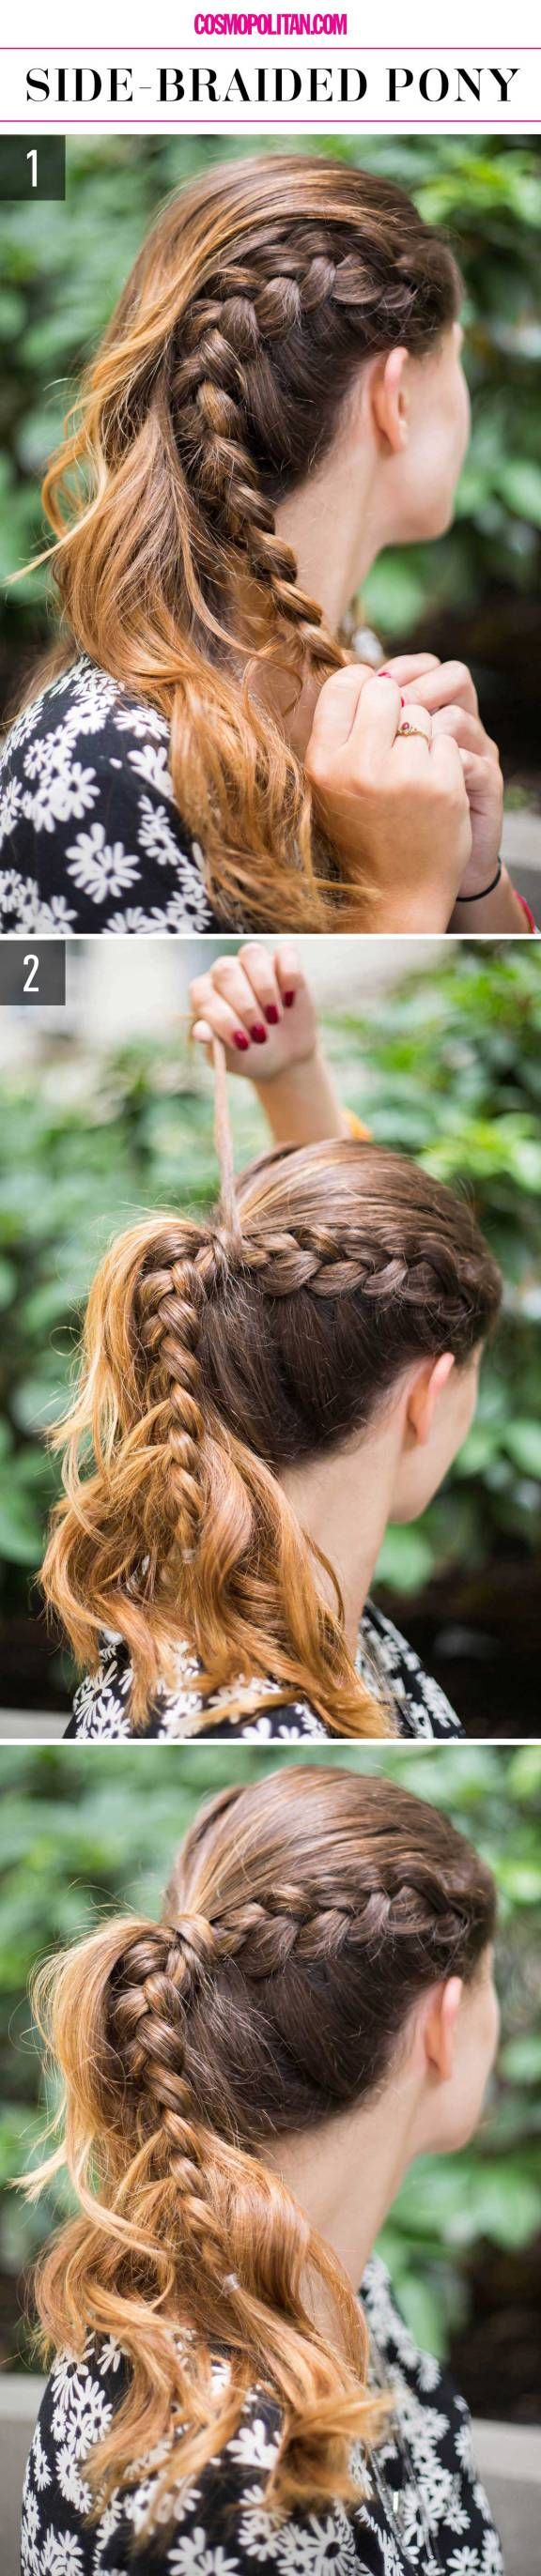 15 Super-Easy Hairstyles for Lazy Girls Who Can't Even